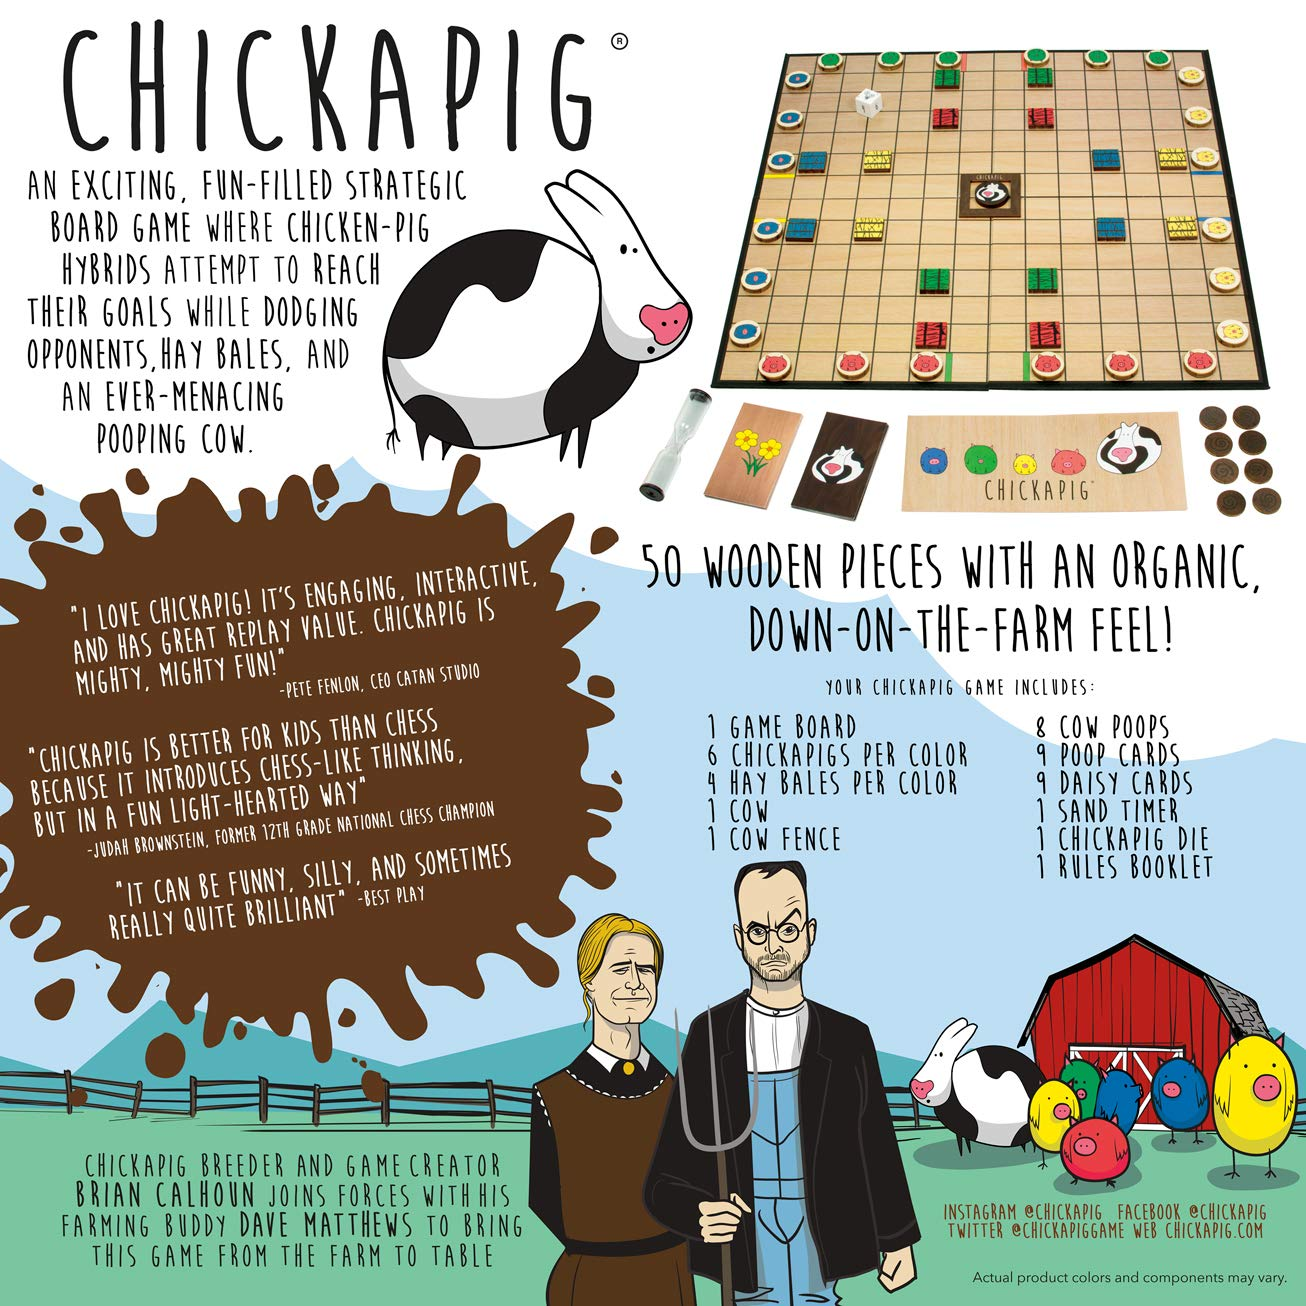 Buffalo Games Chickapig Board Game - A Strategic Board Game Where  Chicken-Pig Hybrids Attempt to Reach Their Goal While Dodging Opponents,  Hay Bales,